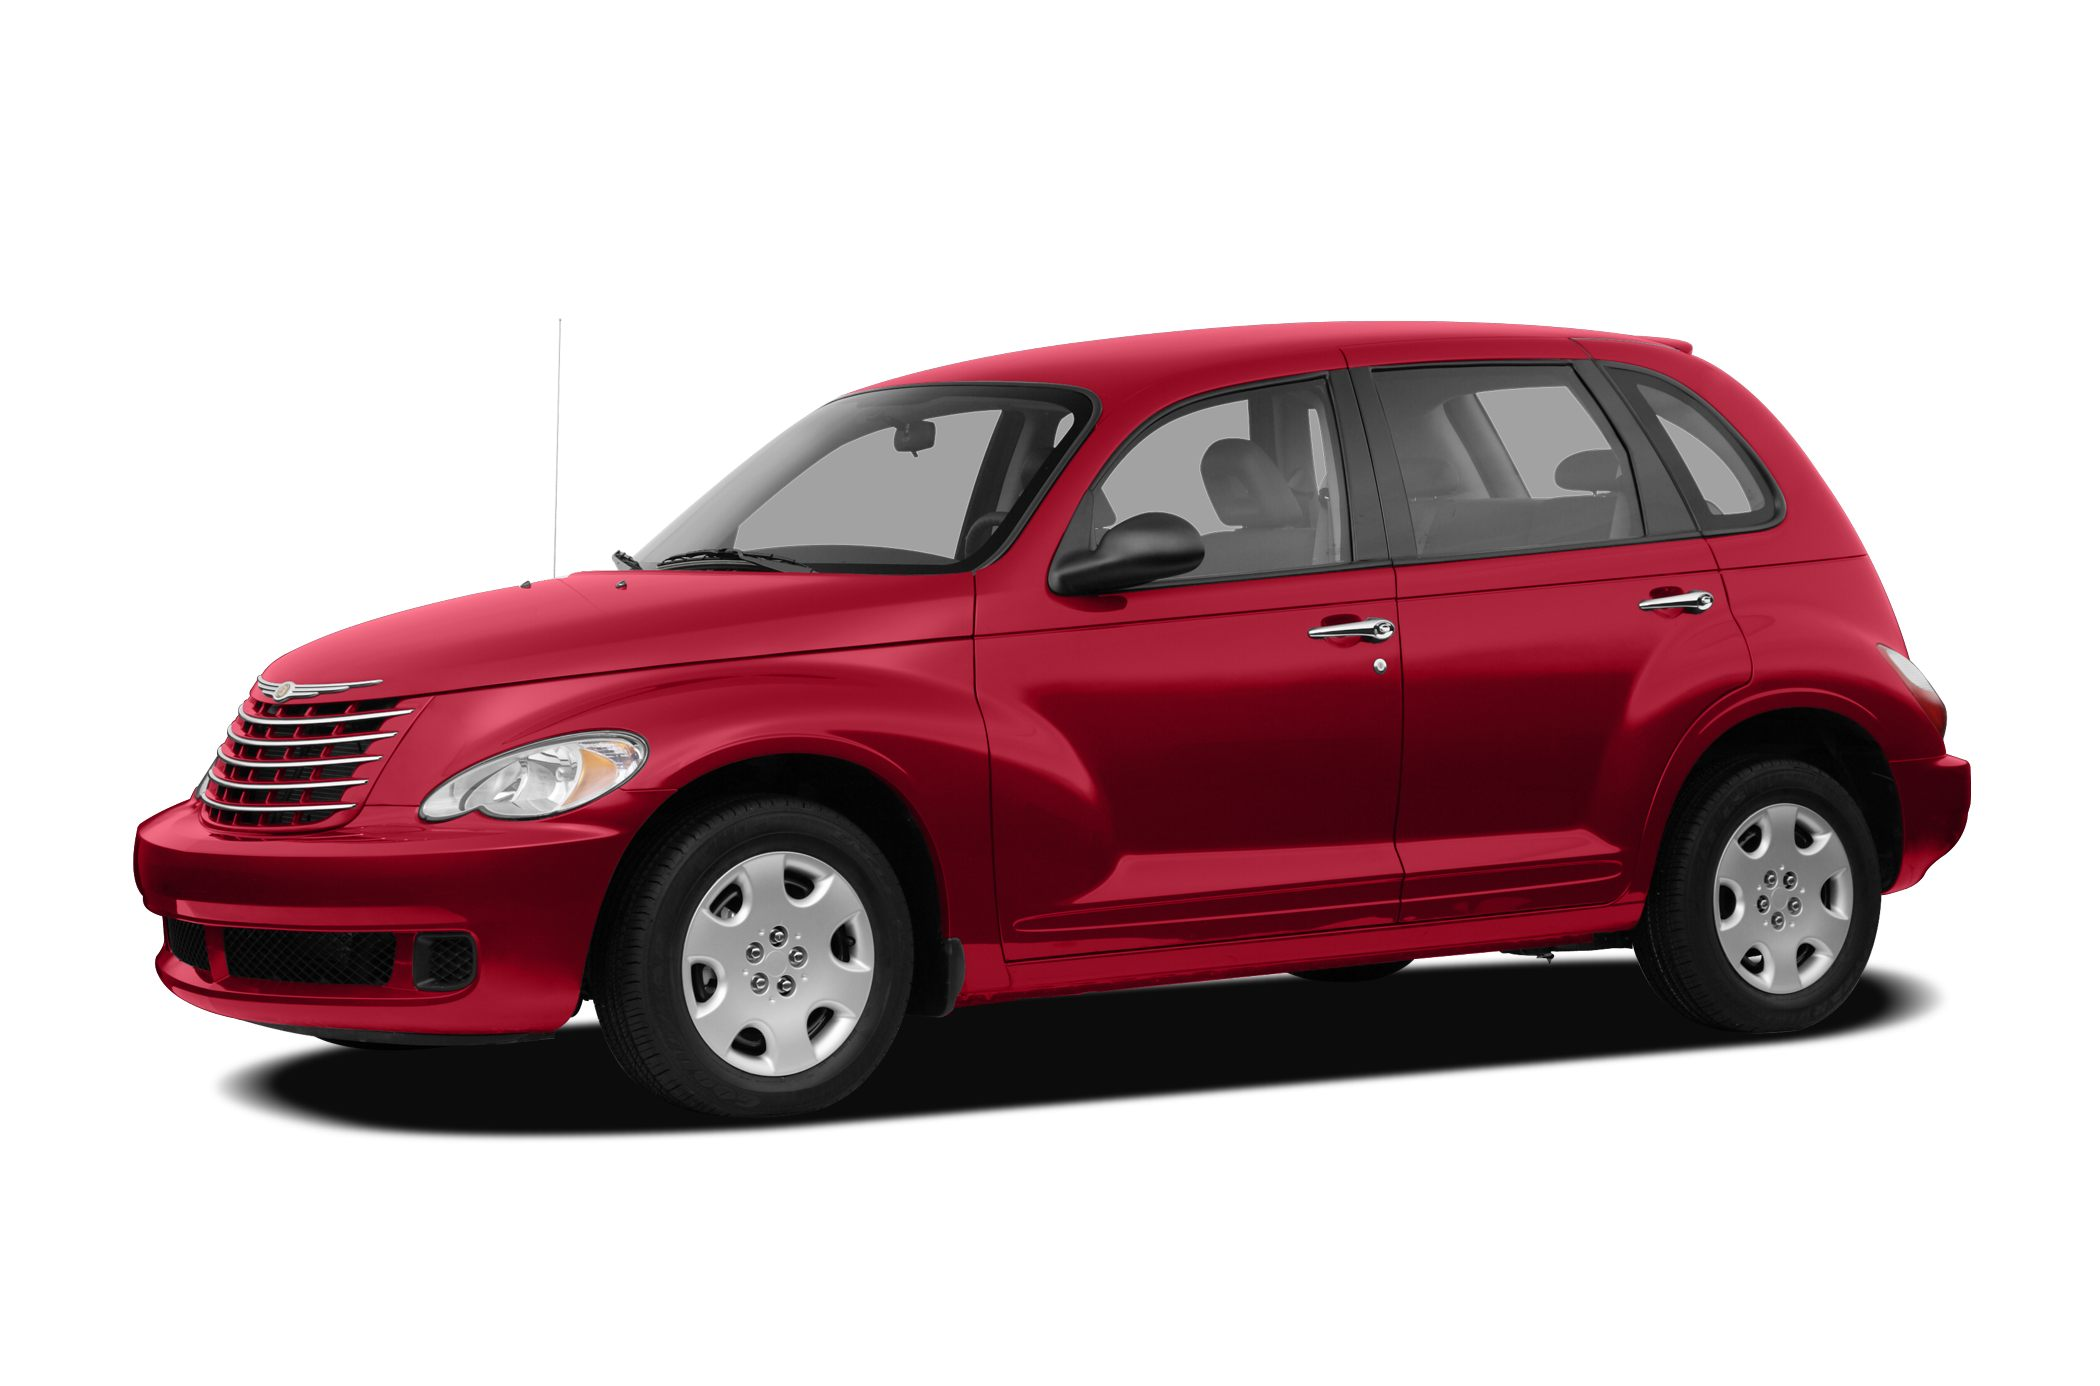 2007 Chrysler PT Cruiser Base PT Cruiser trim 12000 Mile Warranty ONLY 53807 Miles EPA 29 MPG